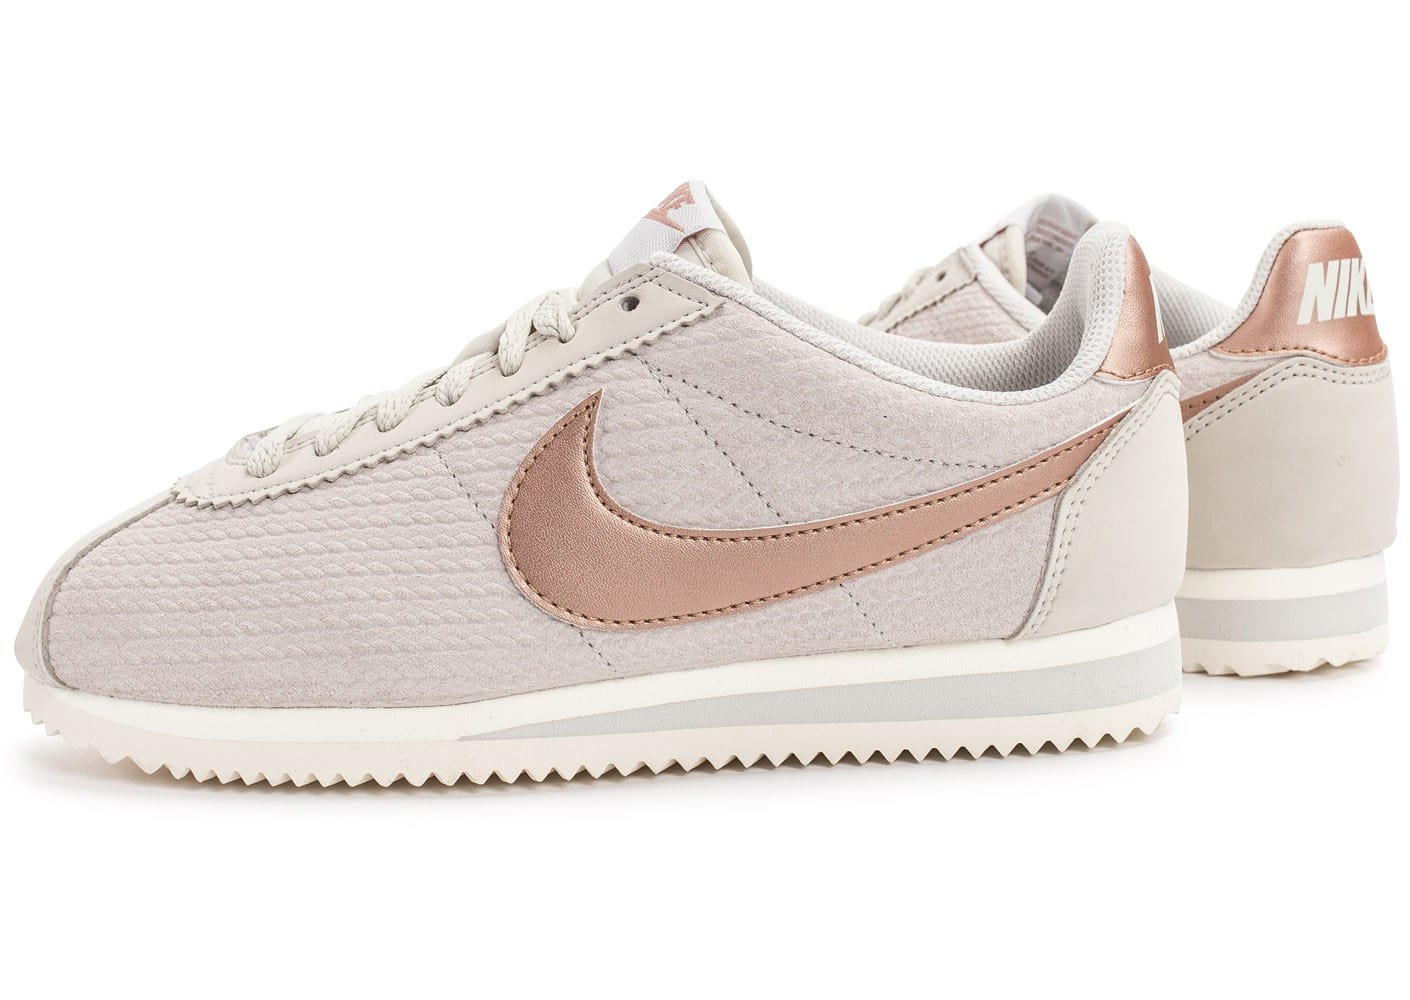 nike cortez leather lux beige chaussures femme chausport. Black Bedroom Furniture Sets. Home Design Ideas